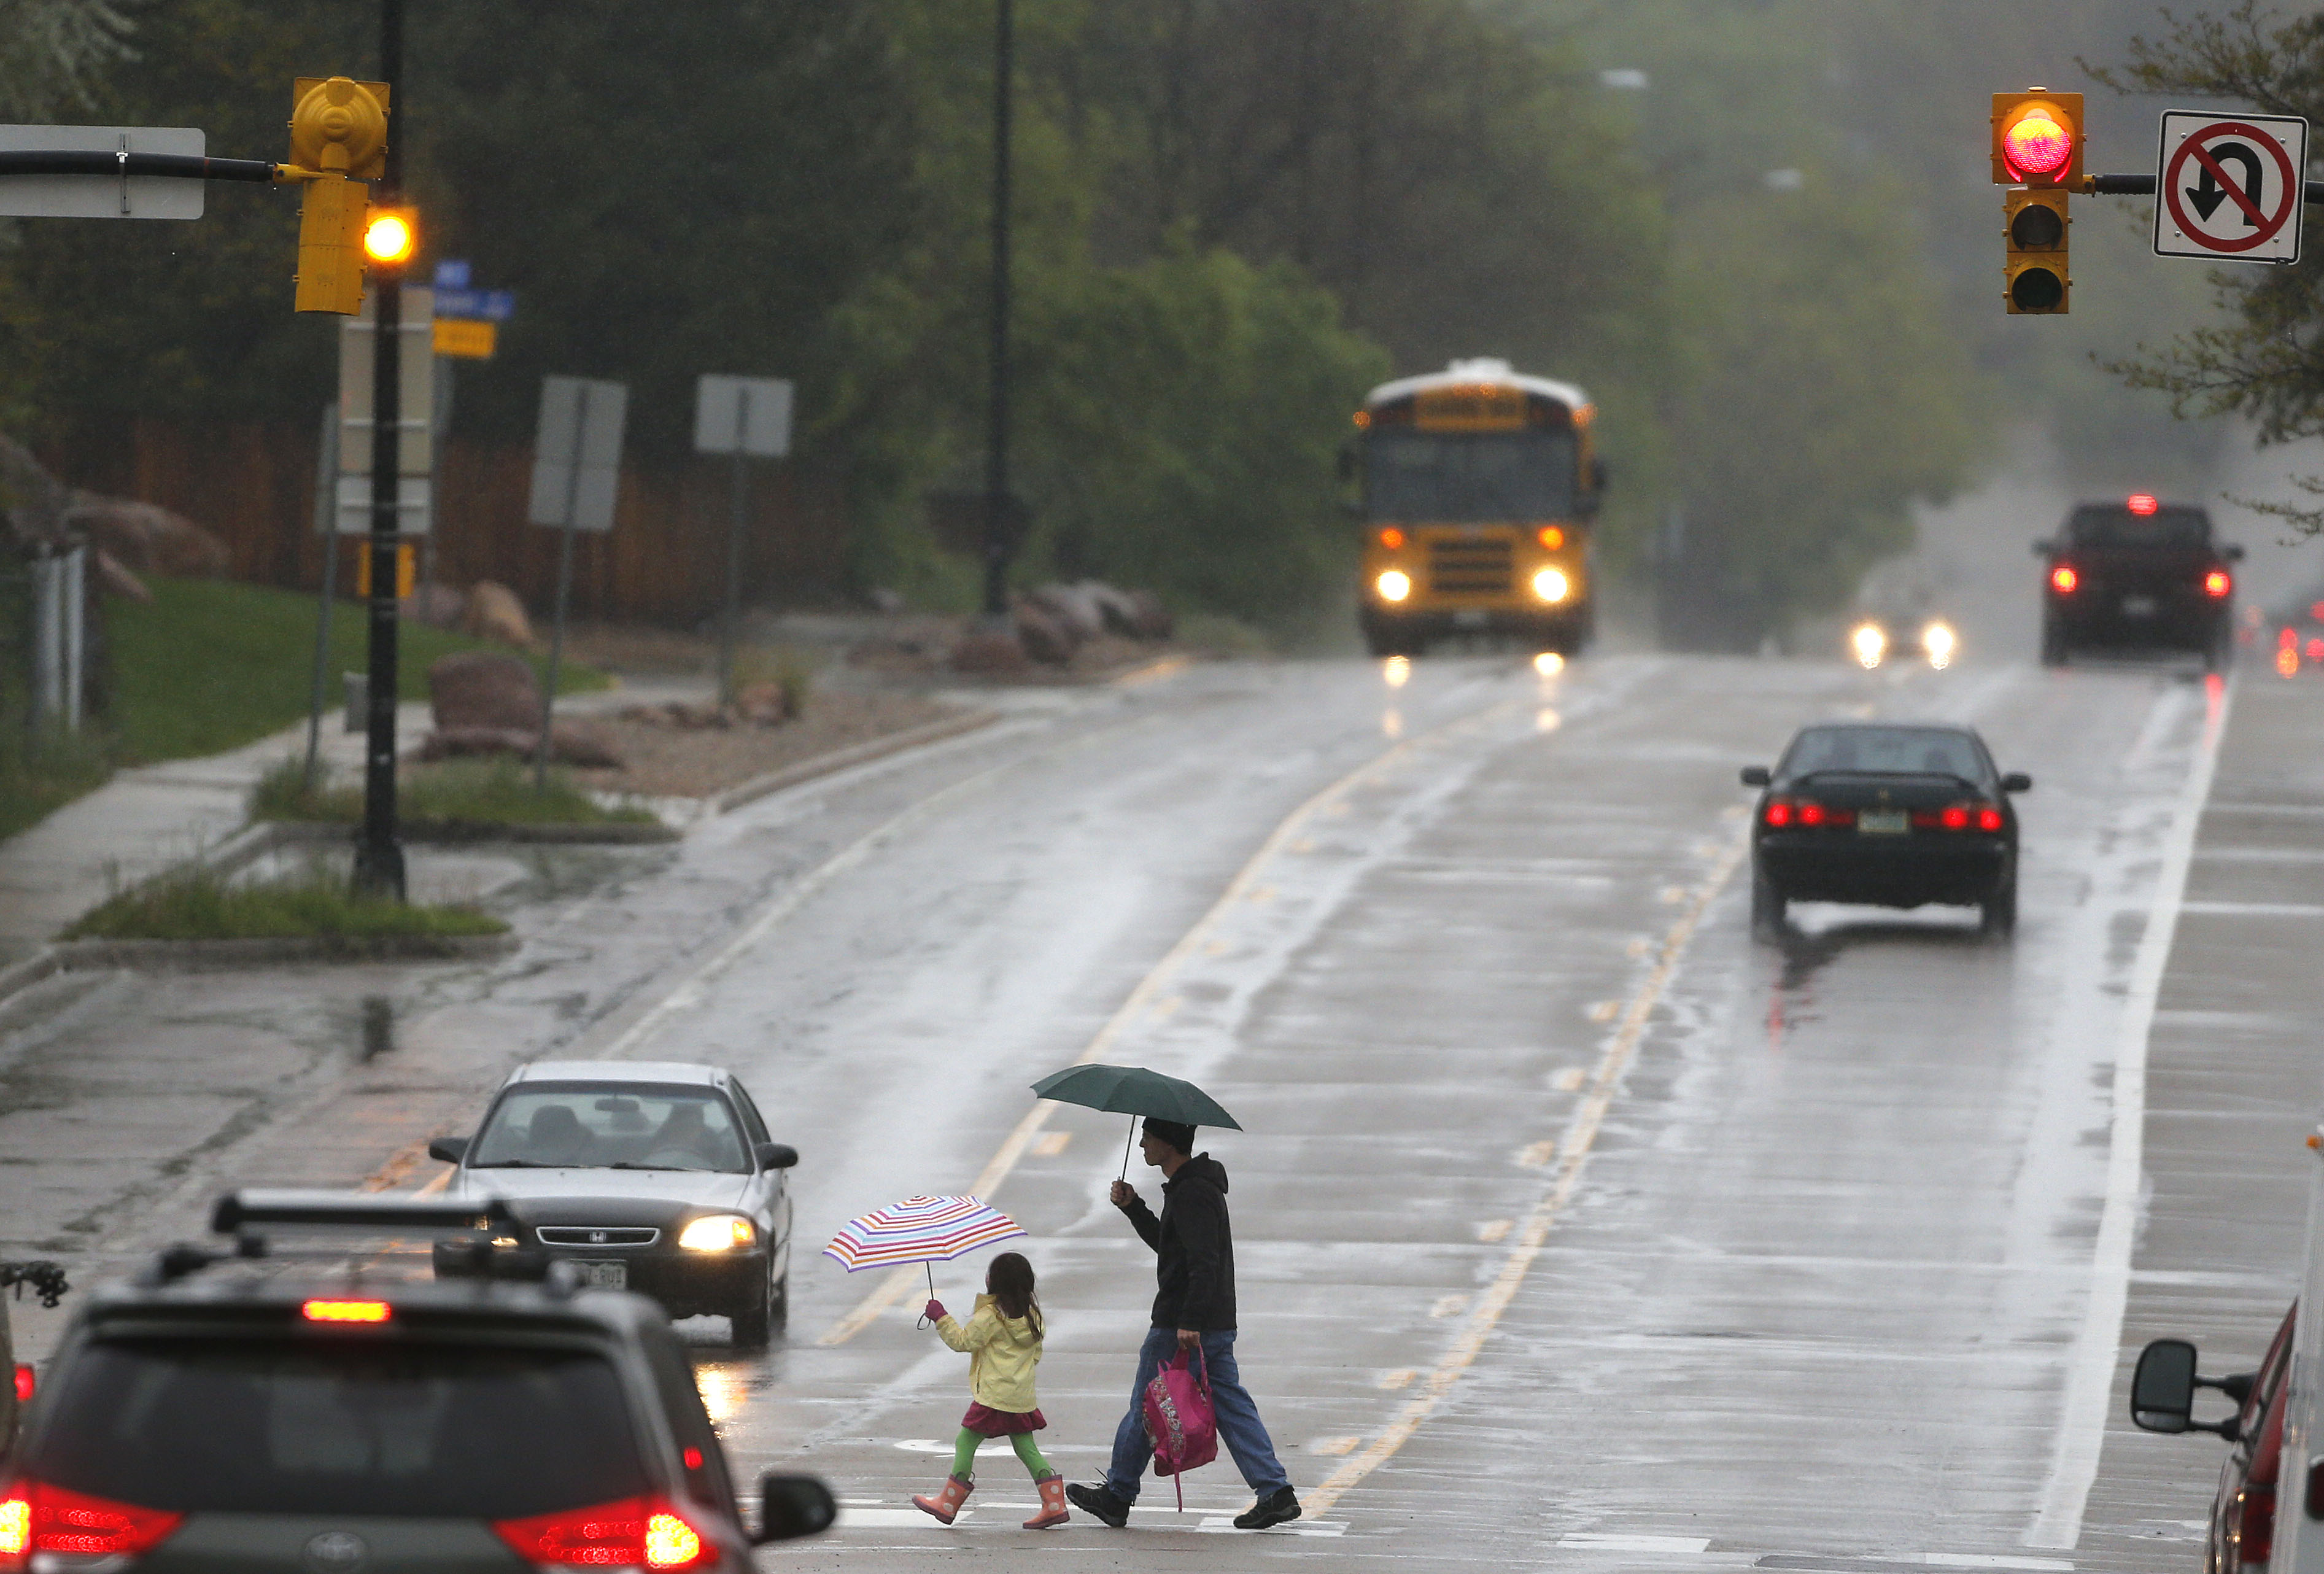 A man walks a student to school in the rain, in Boulder, Colo., Tuesday, May 19, 2015. Colorado braced for a spring storm with unseasonably heavy rains and several inches of snow expected in the high country.